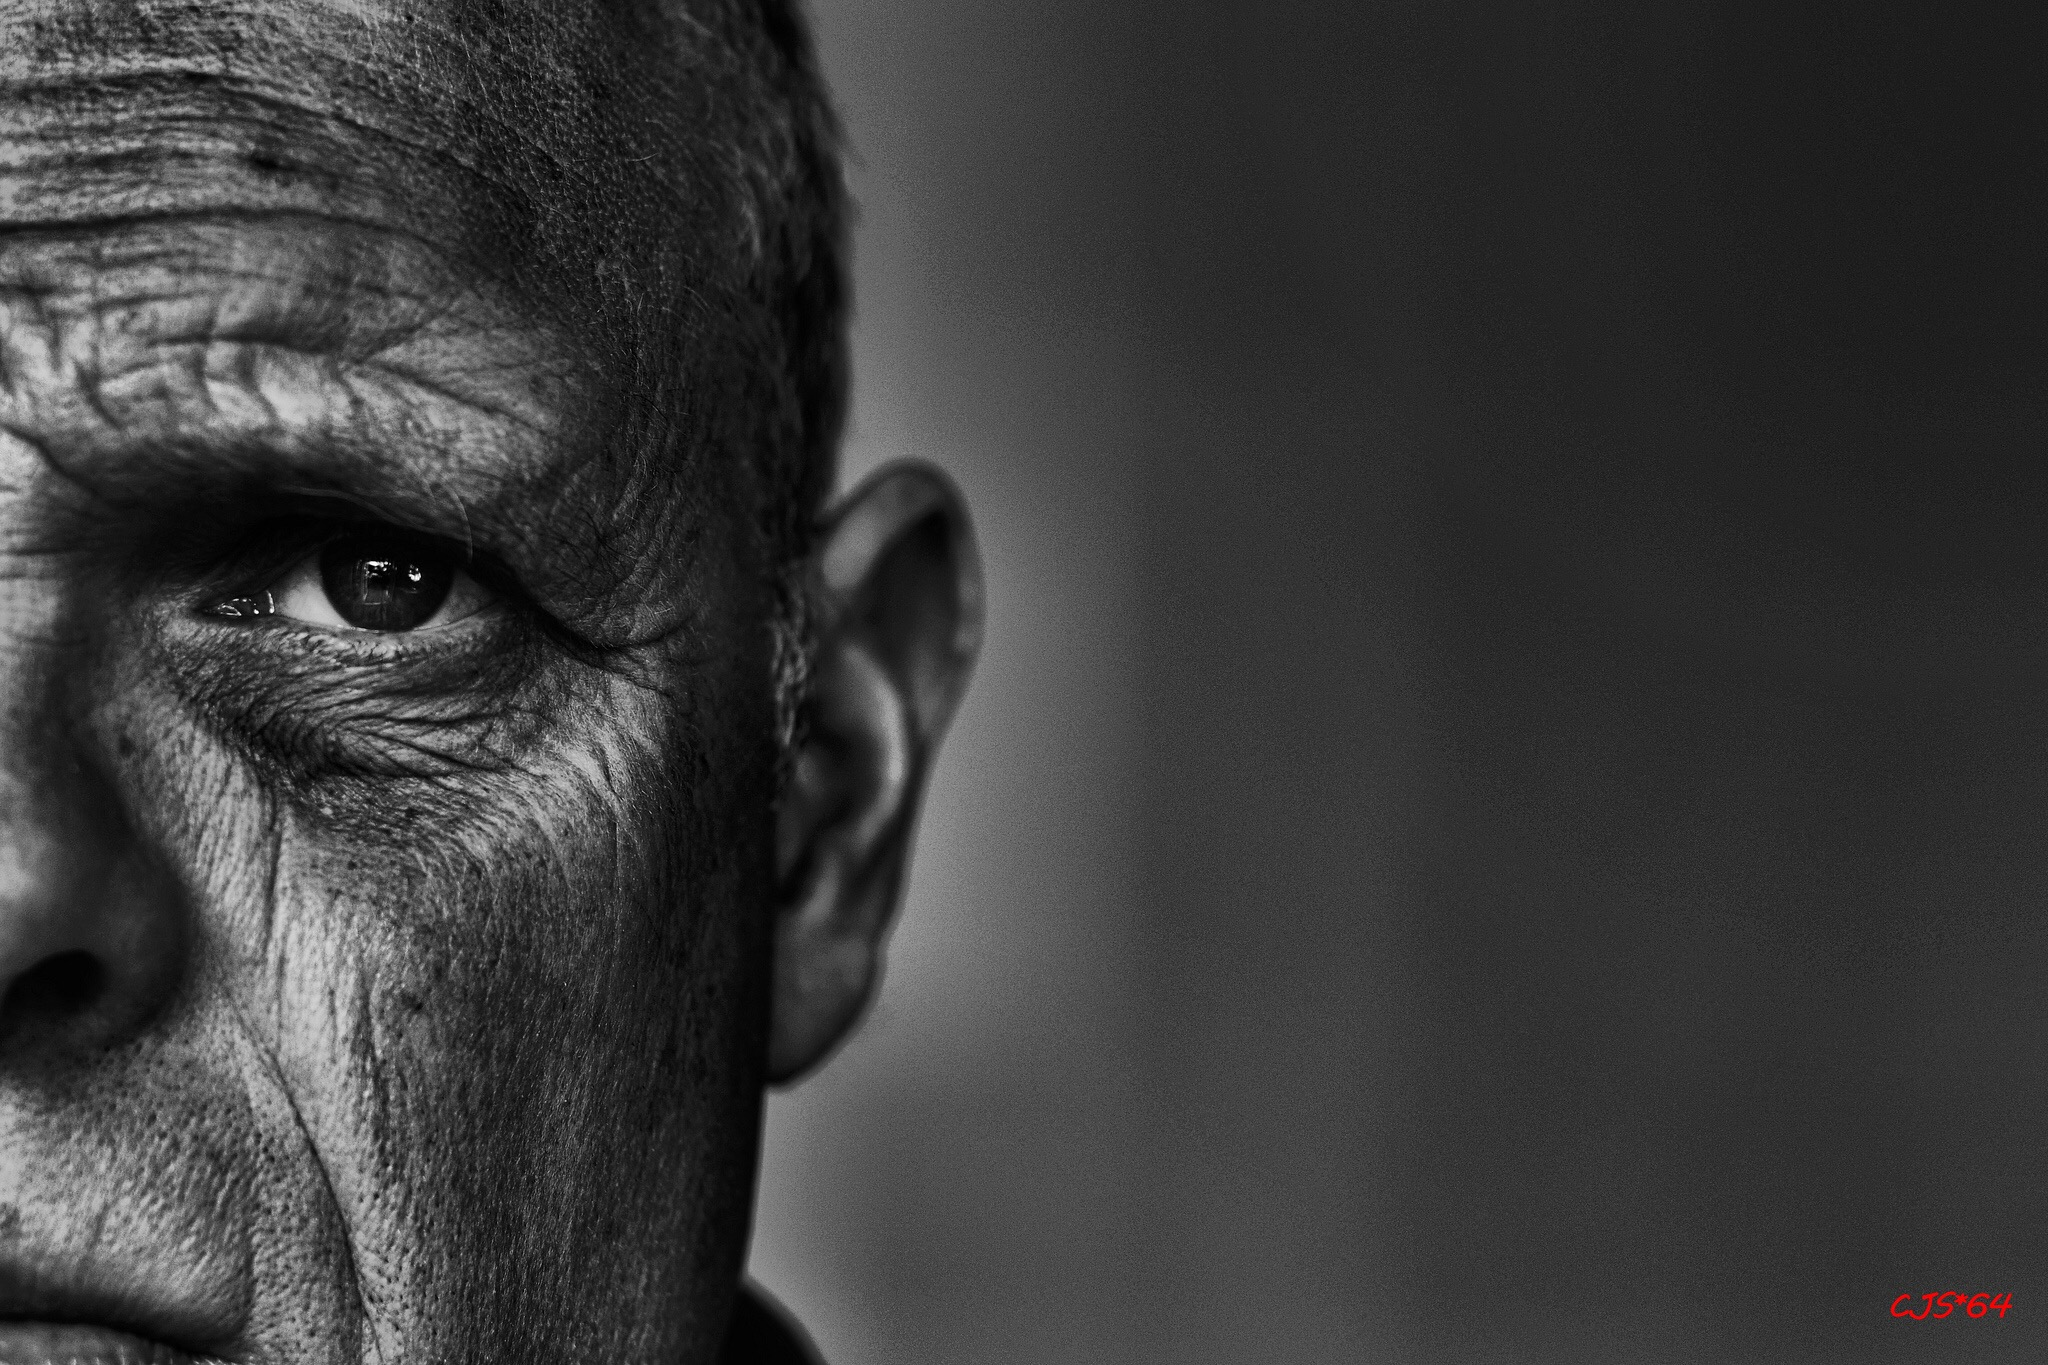 LXP - Lifexpe - old man eye faceYour Experience could boost other people growth